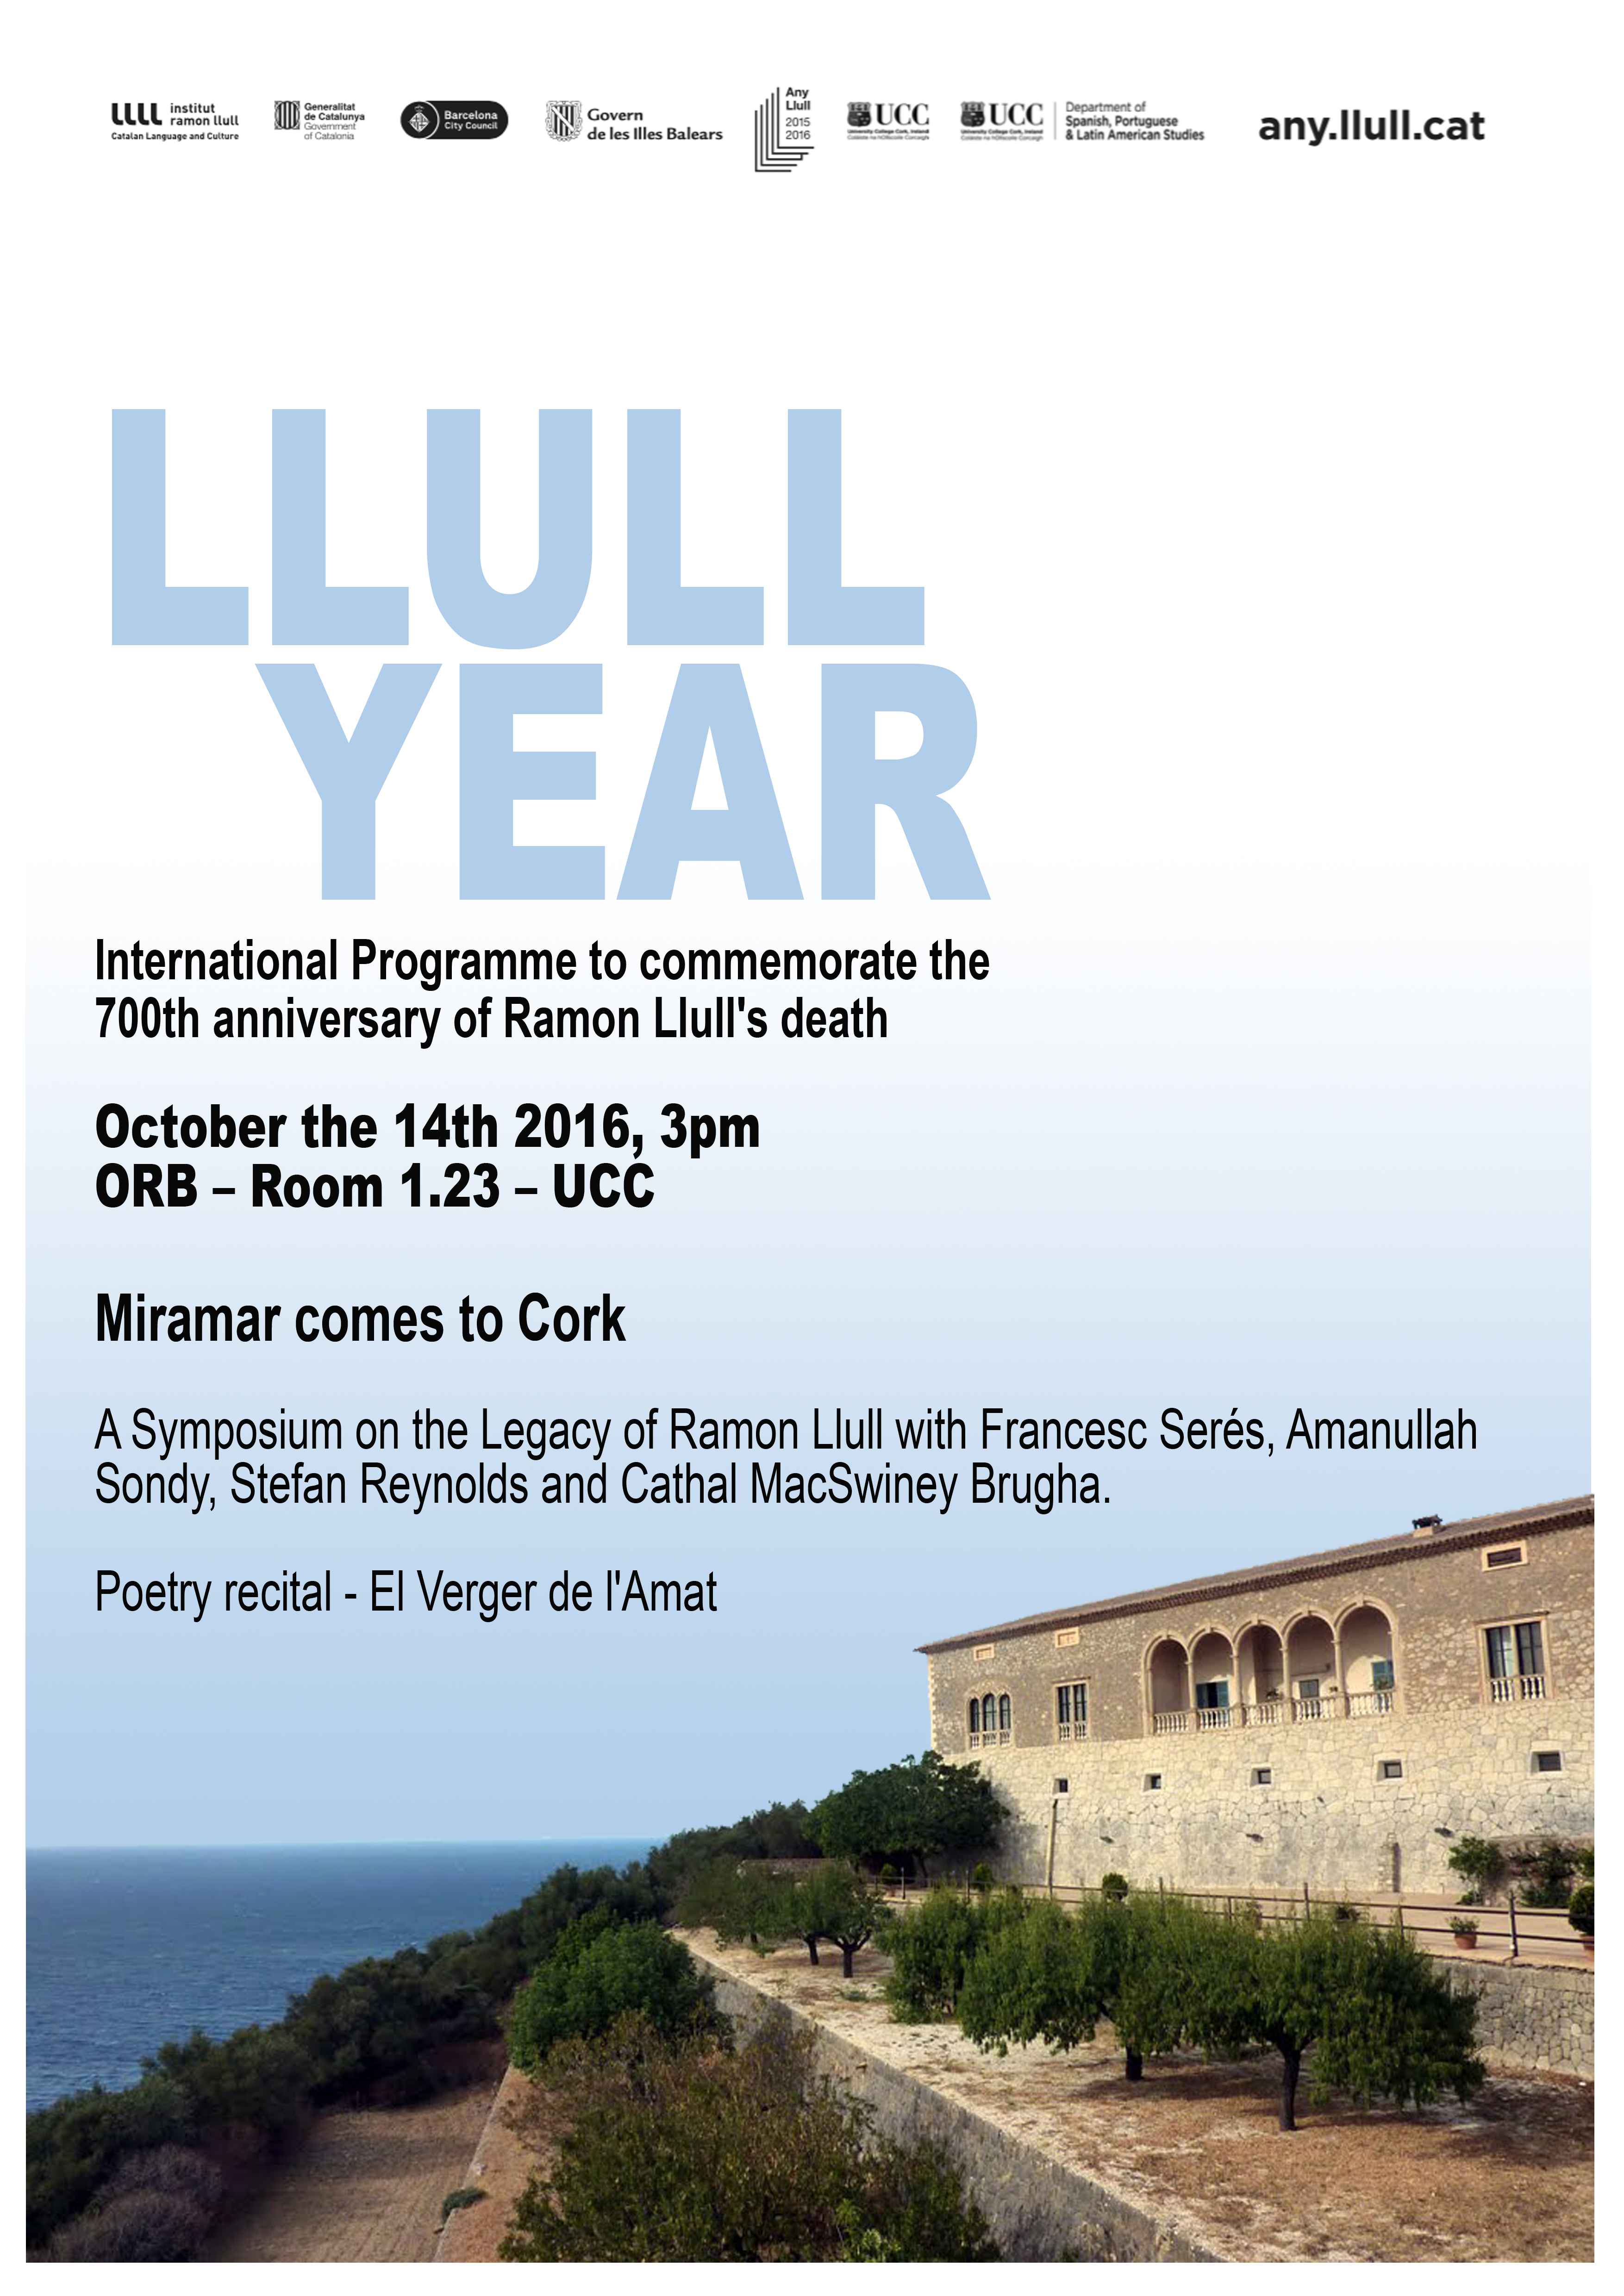 Miramar comes to Cork: A Symposium on the Legacy of Ramon Llull